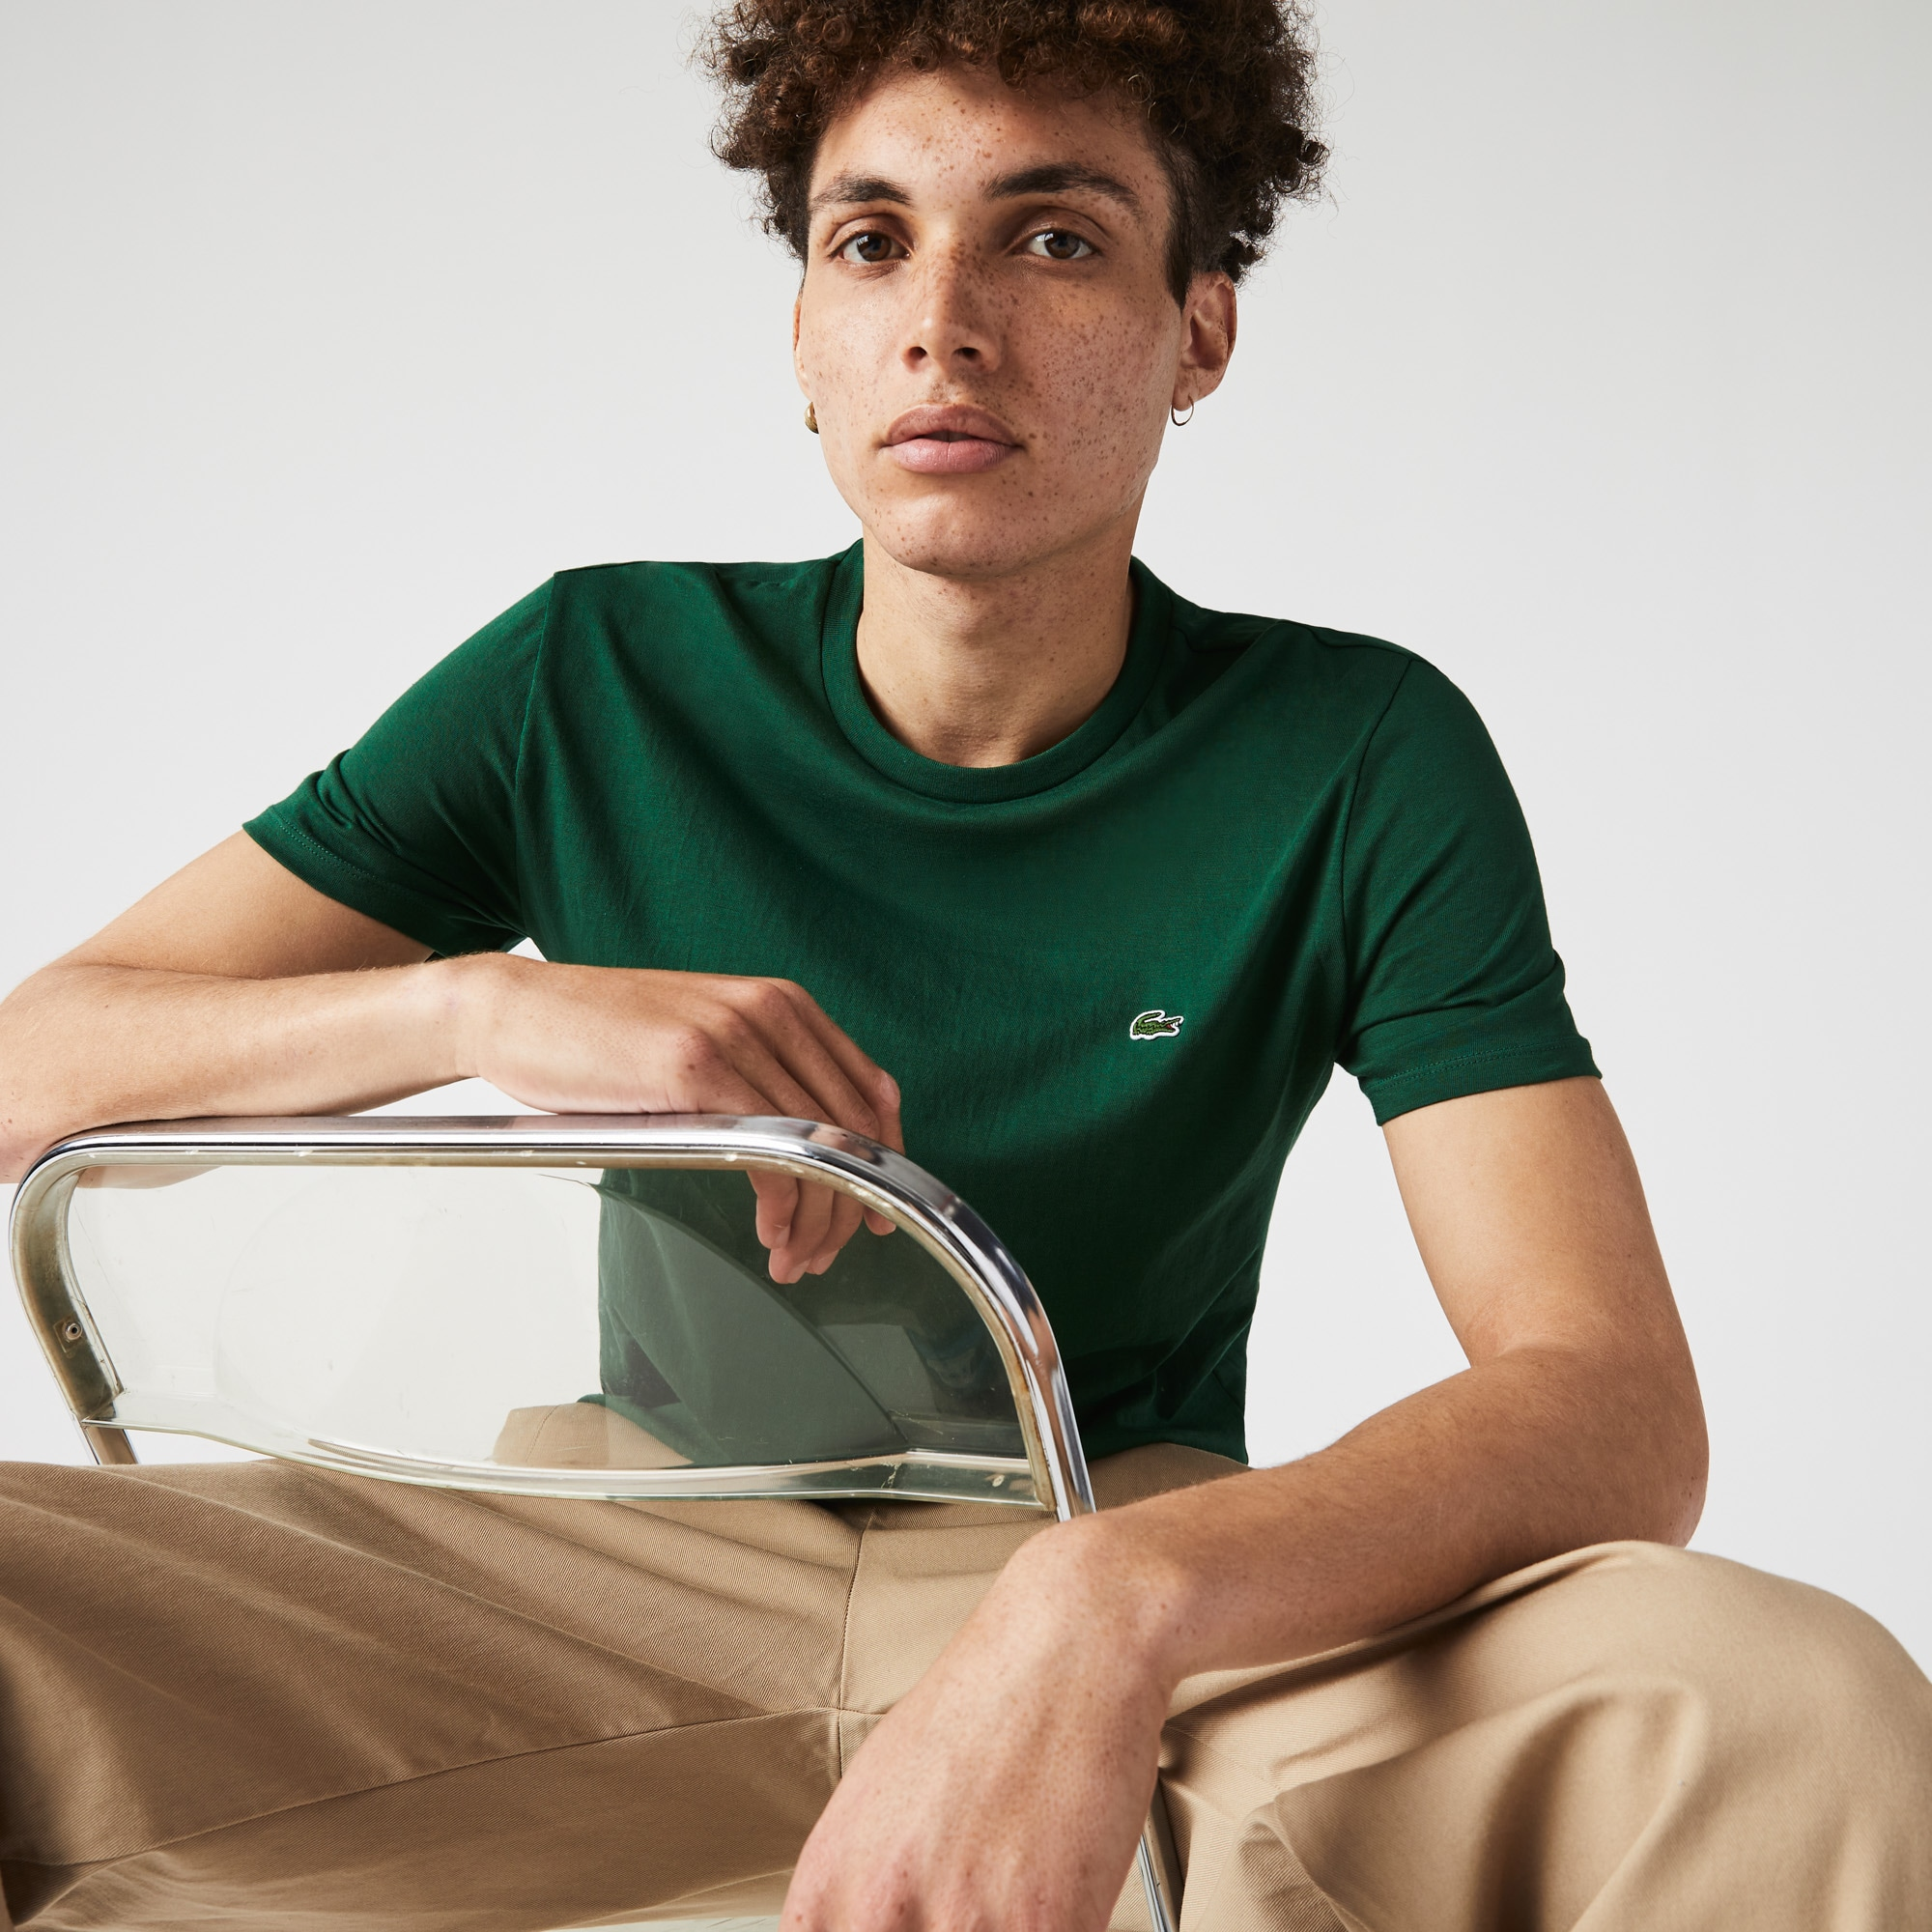 ec36ffca992 Lost Art T Shirt Lacoste - todoityourself.com